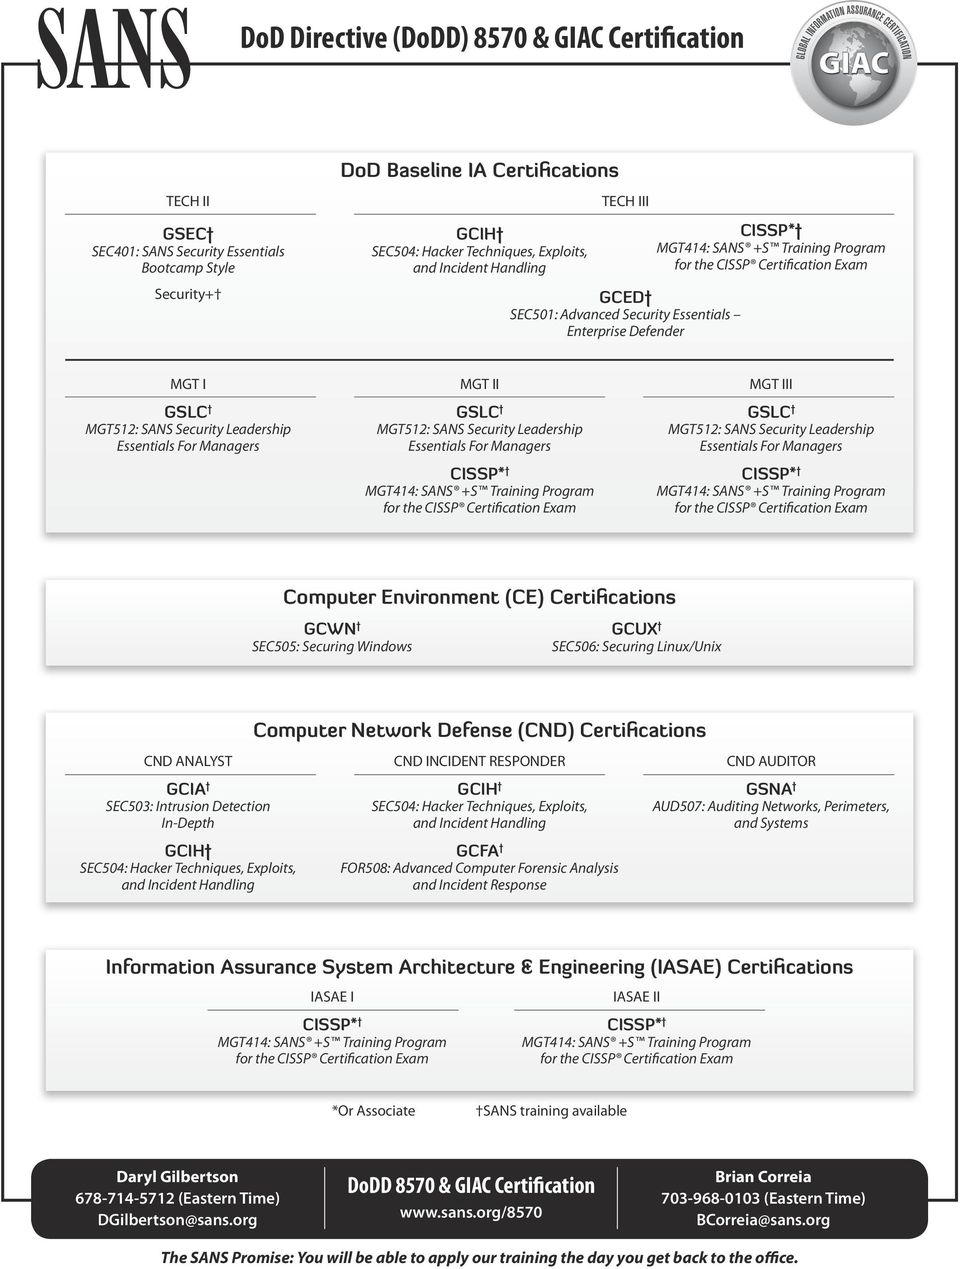 GSLC MGT512: SANS Security Leadership Essentials For Managers CISSP* Computer Environment (CE) Certifications GCWN SEC505: Securing Windows GCUX SEC506: Securing Linux/Unix CND ANALYST Computer